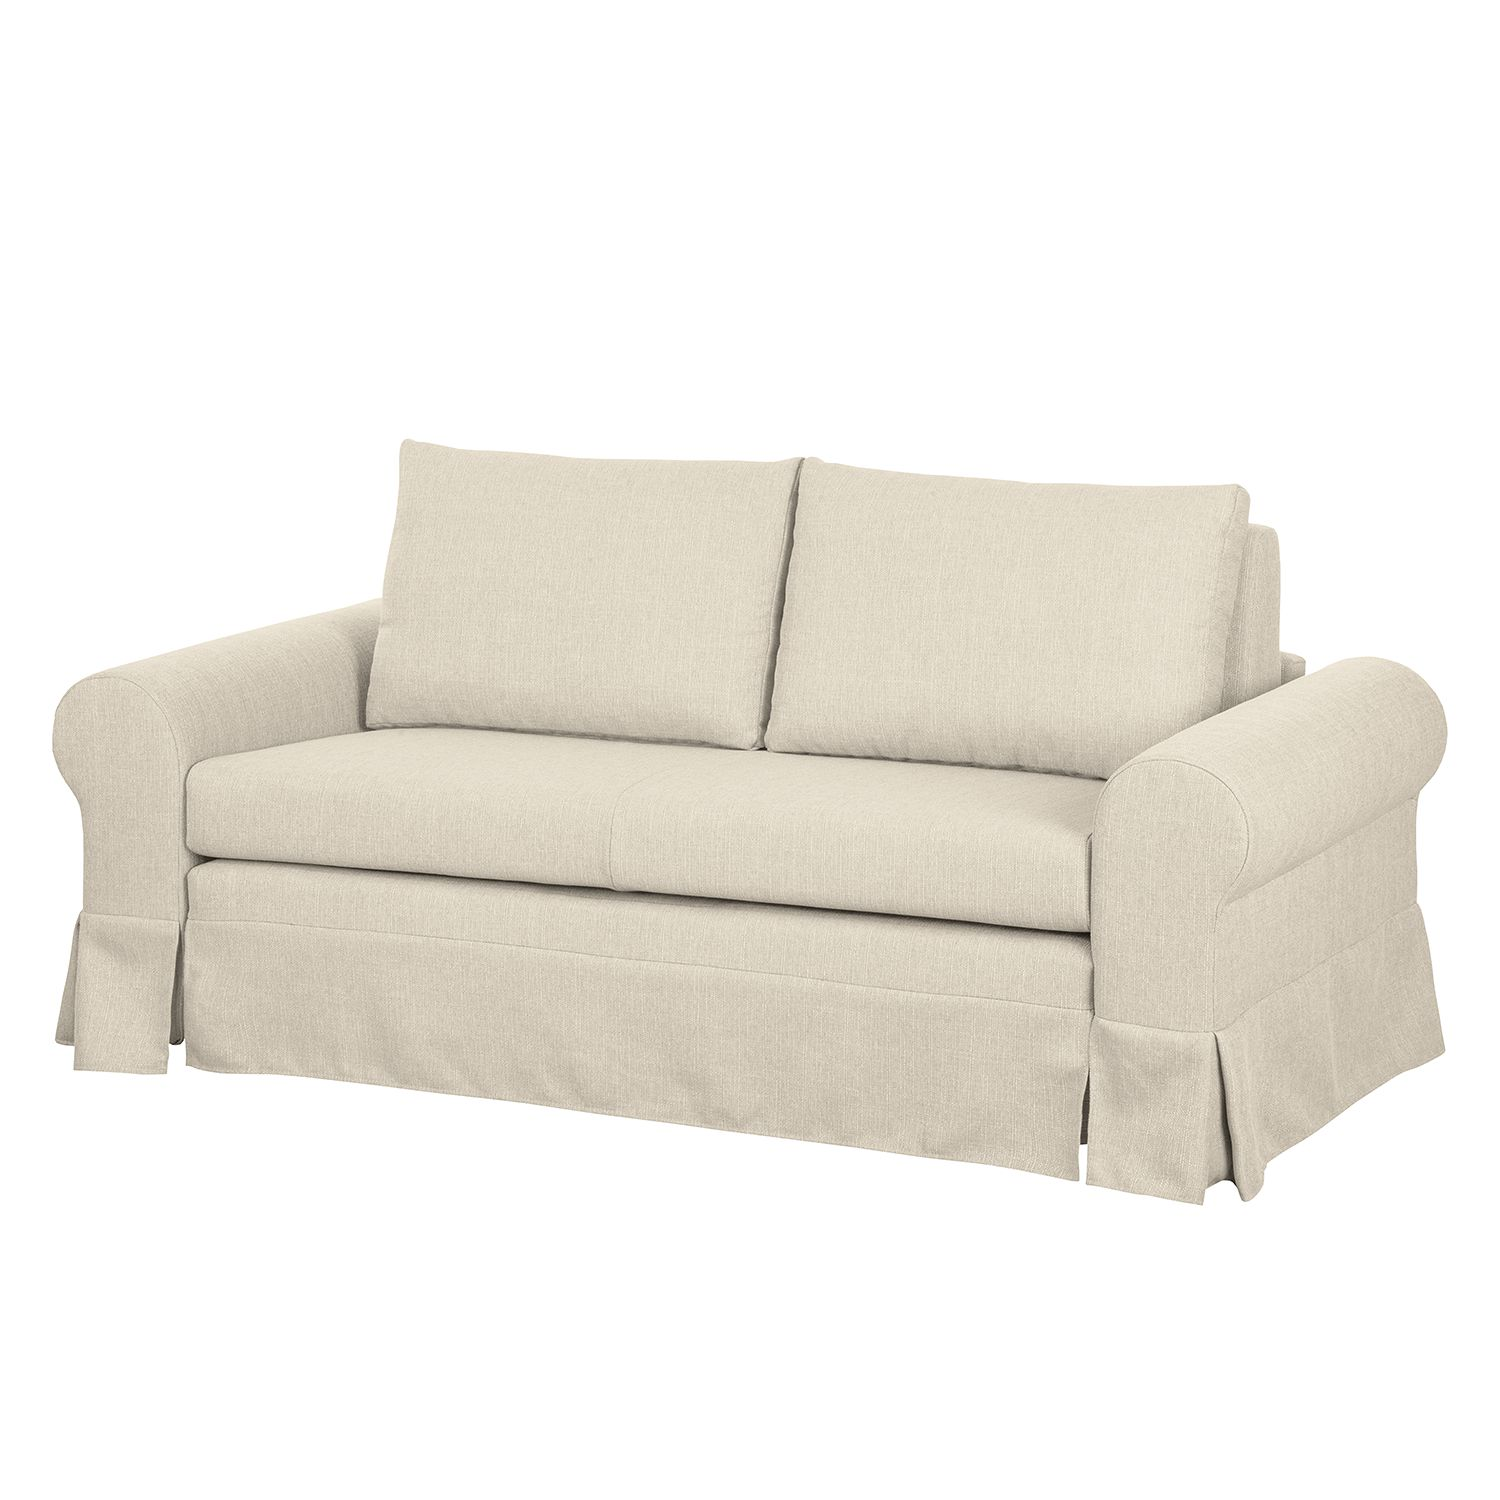 Schlafsofa latina xiii webstoff creme 205 cm mooved for Schlafsofa latina